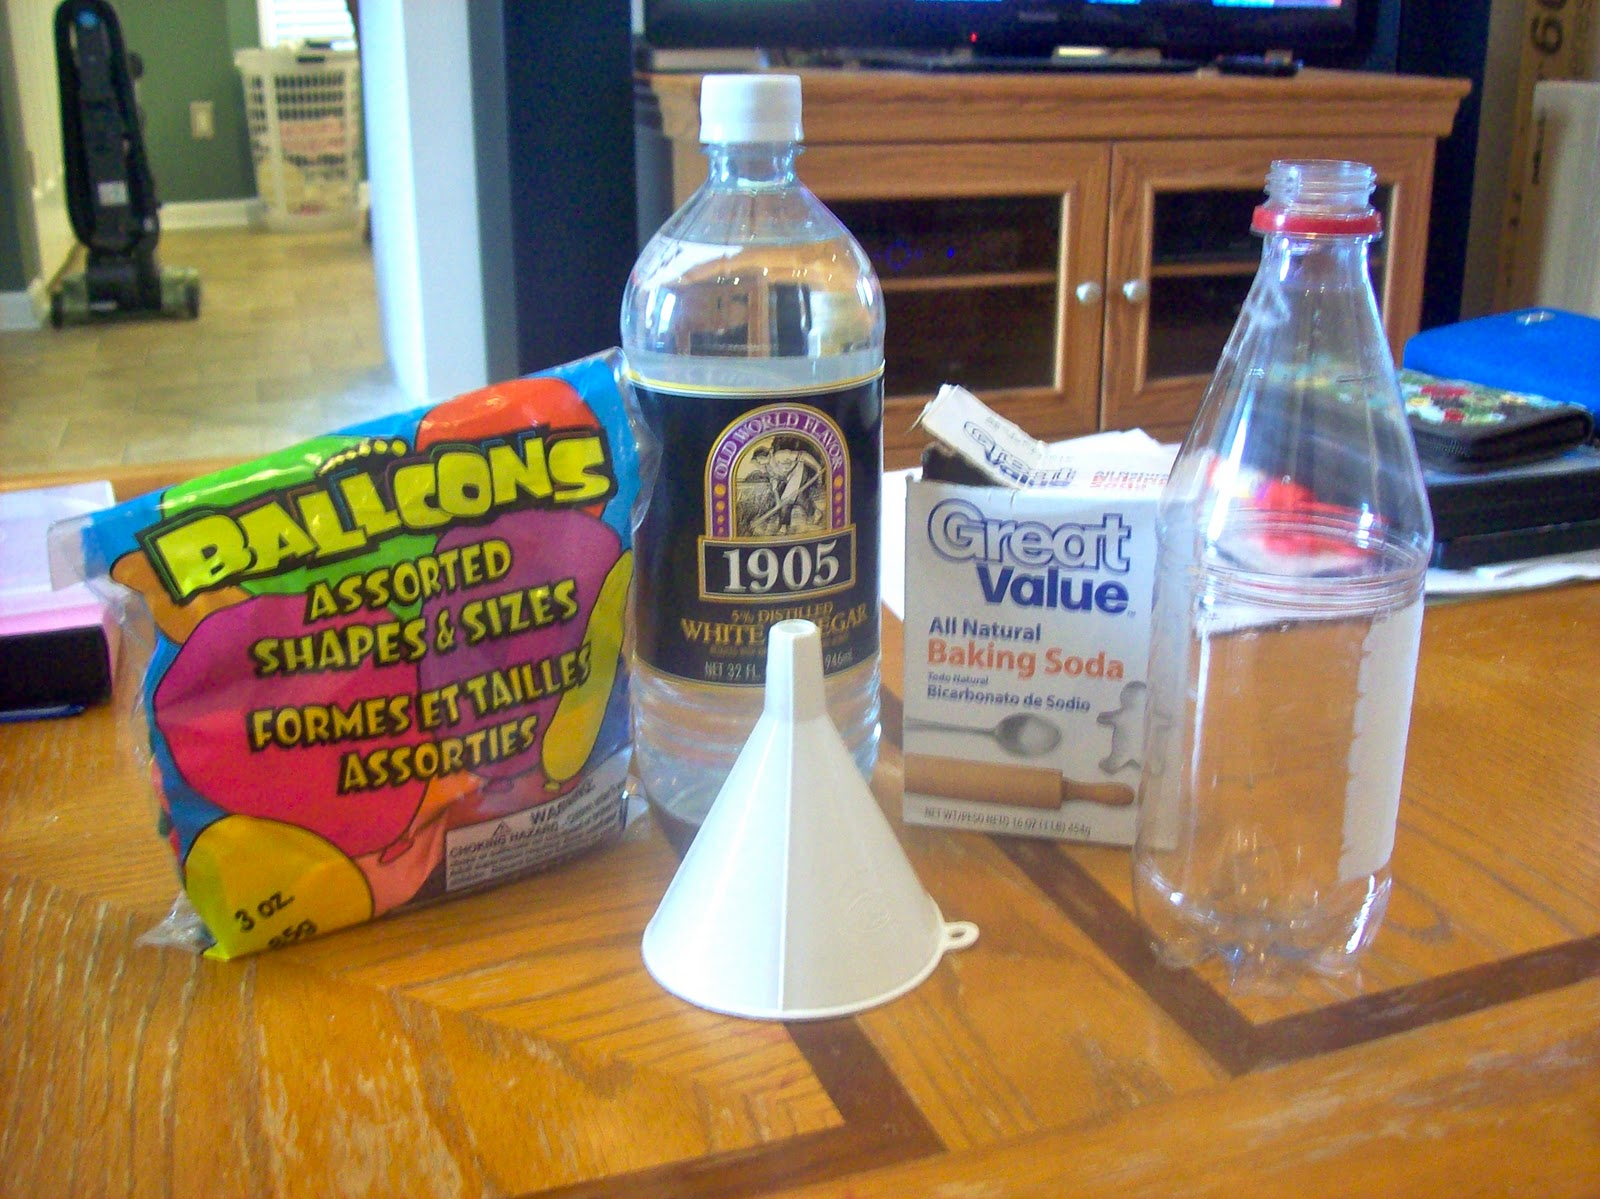 Science Fair Project Soda Fizz http://centralpiedmontmommies.blogspot.com/2012/01/science-mom-build-fizz-inflator.html